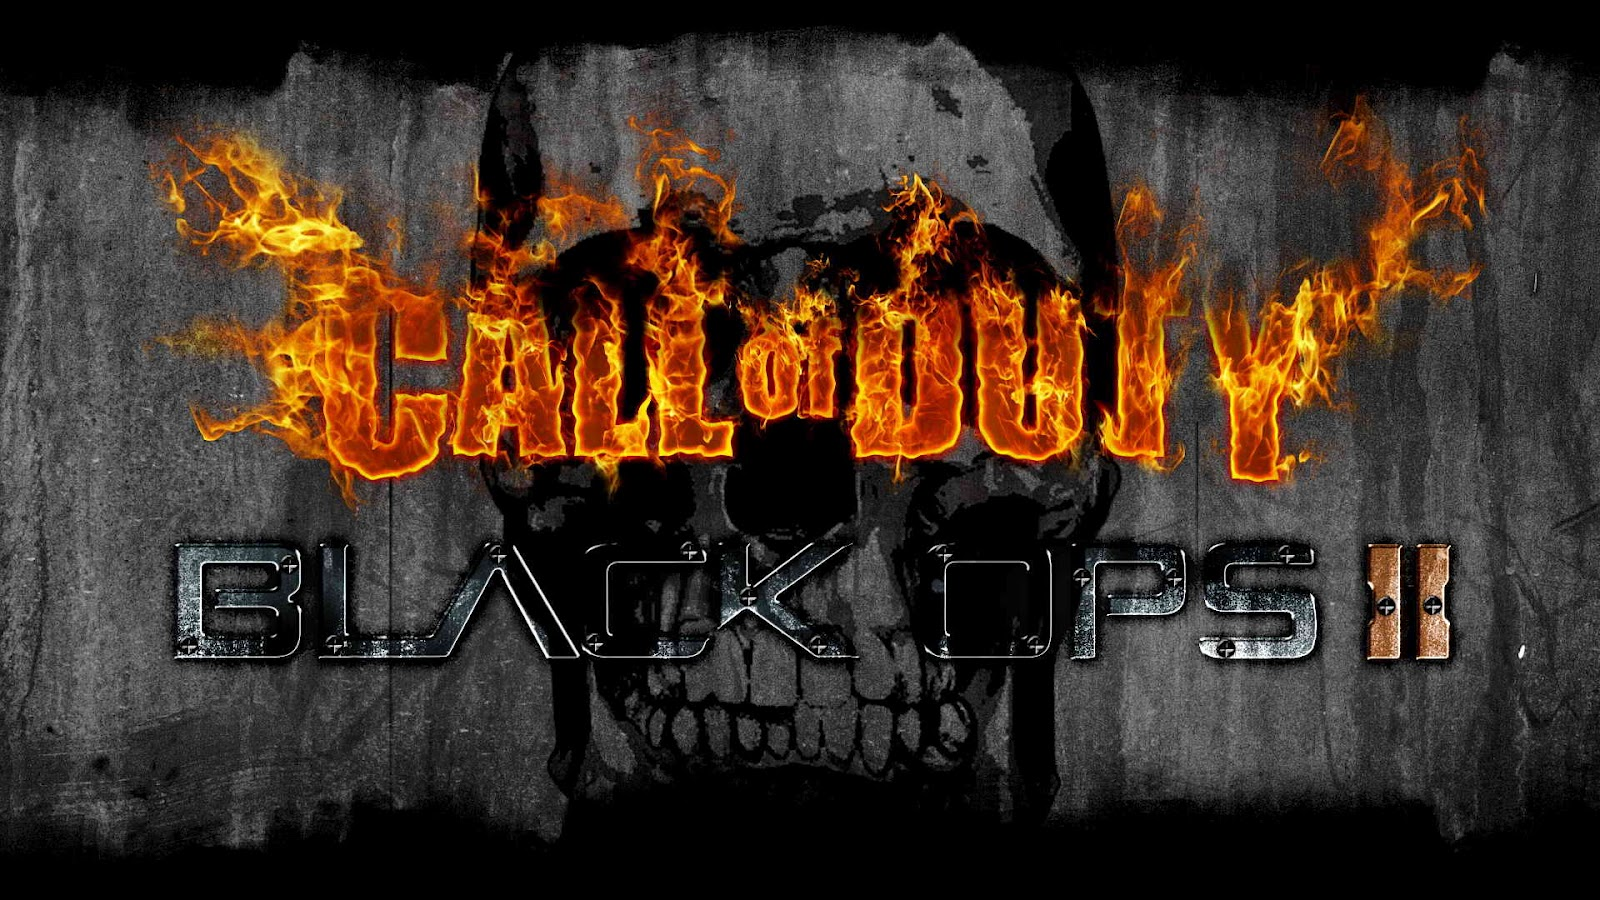 HD WALLPAPERS Call of Duty Black ops 2 HD Wallpapers 1600x900